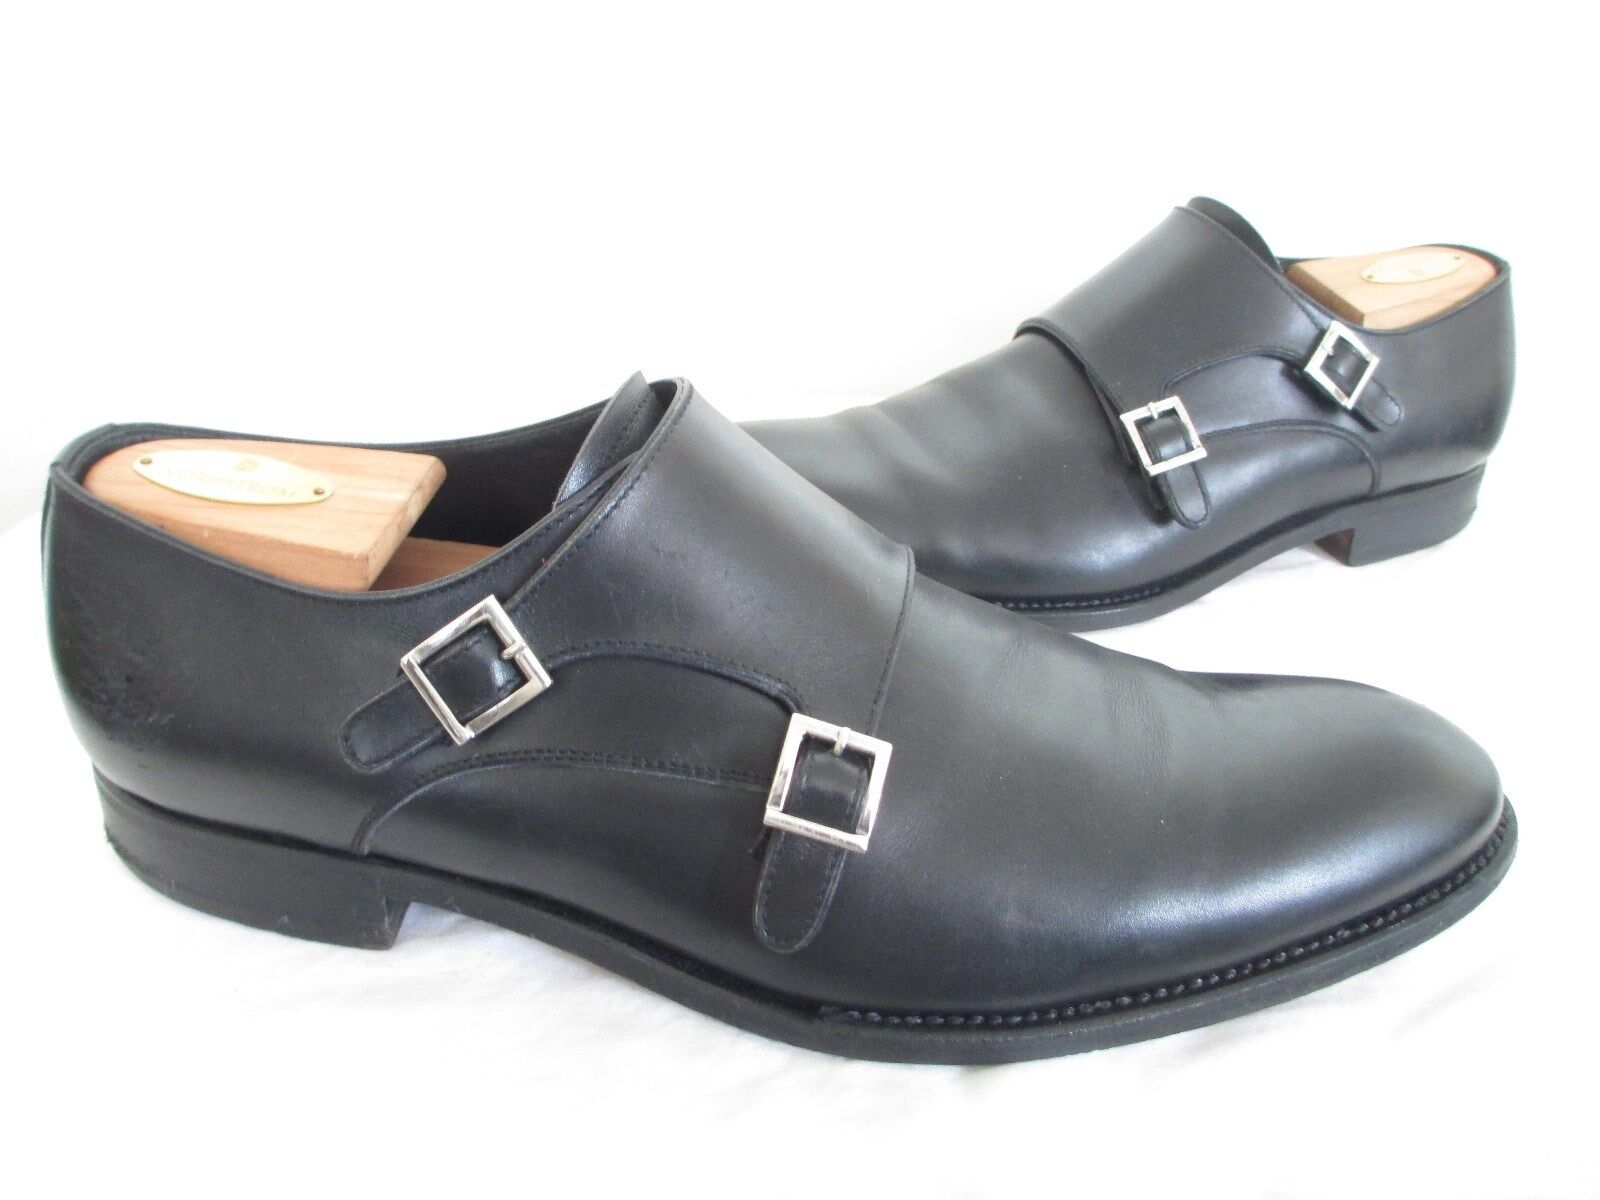 CAMPANILE DOUBLE MONK STRAP BLACK LEATHER ALMOND TOE SHOES MADE IN ITALY SZ 11